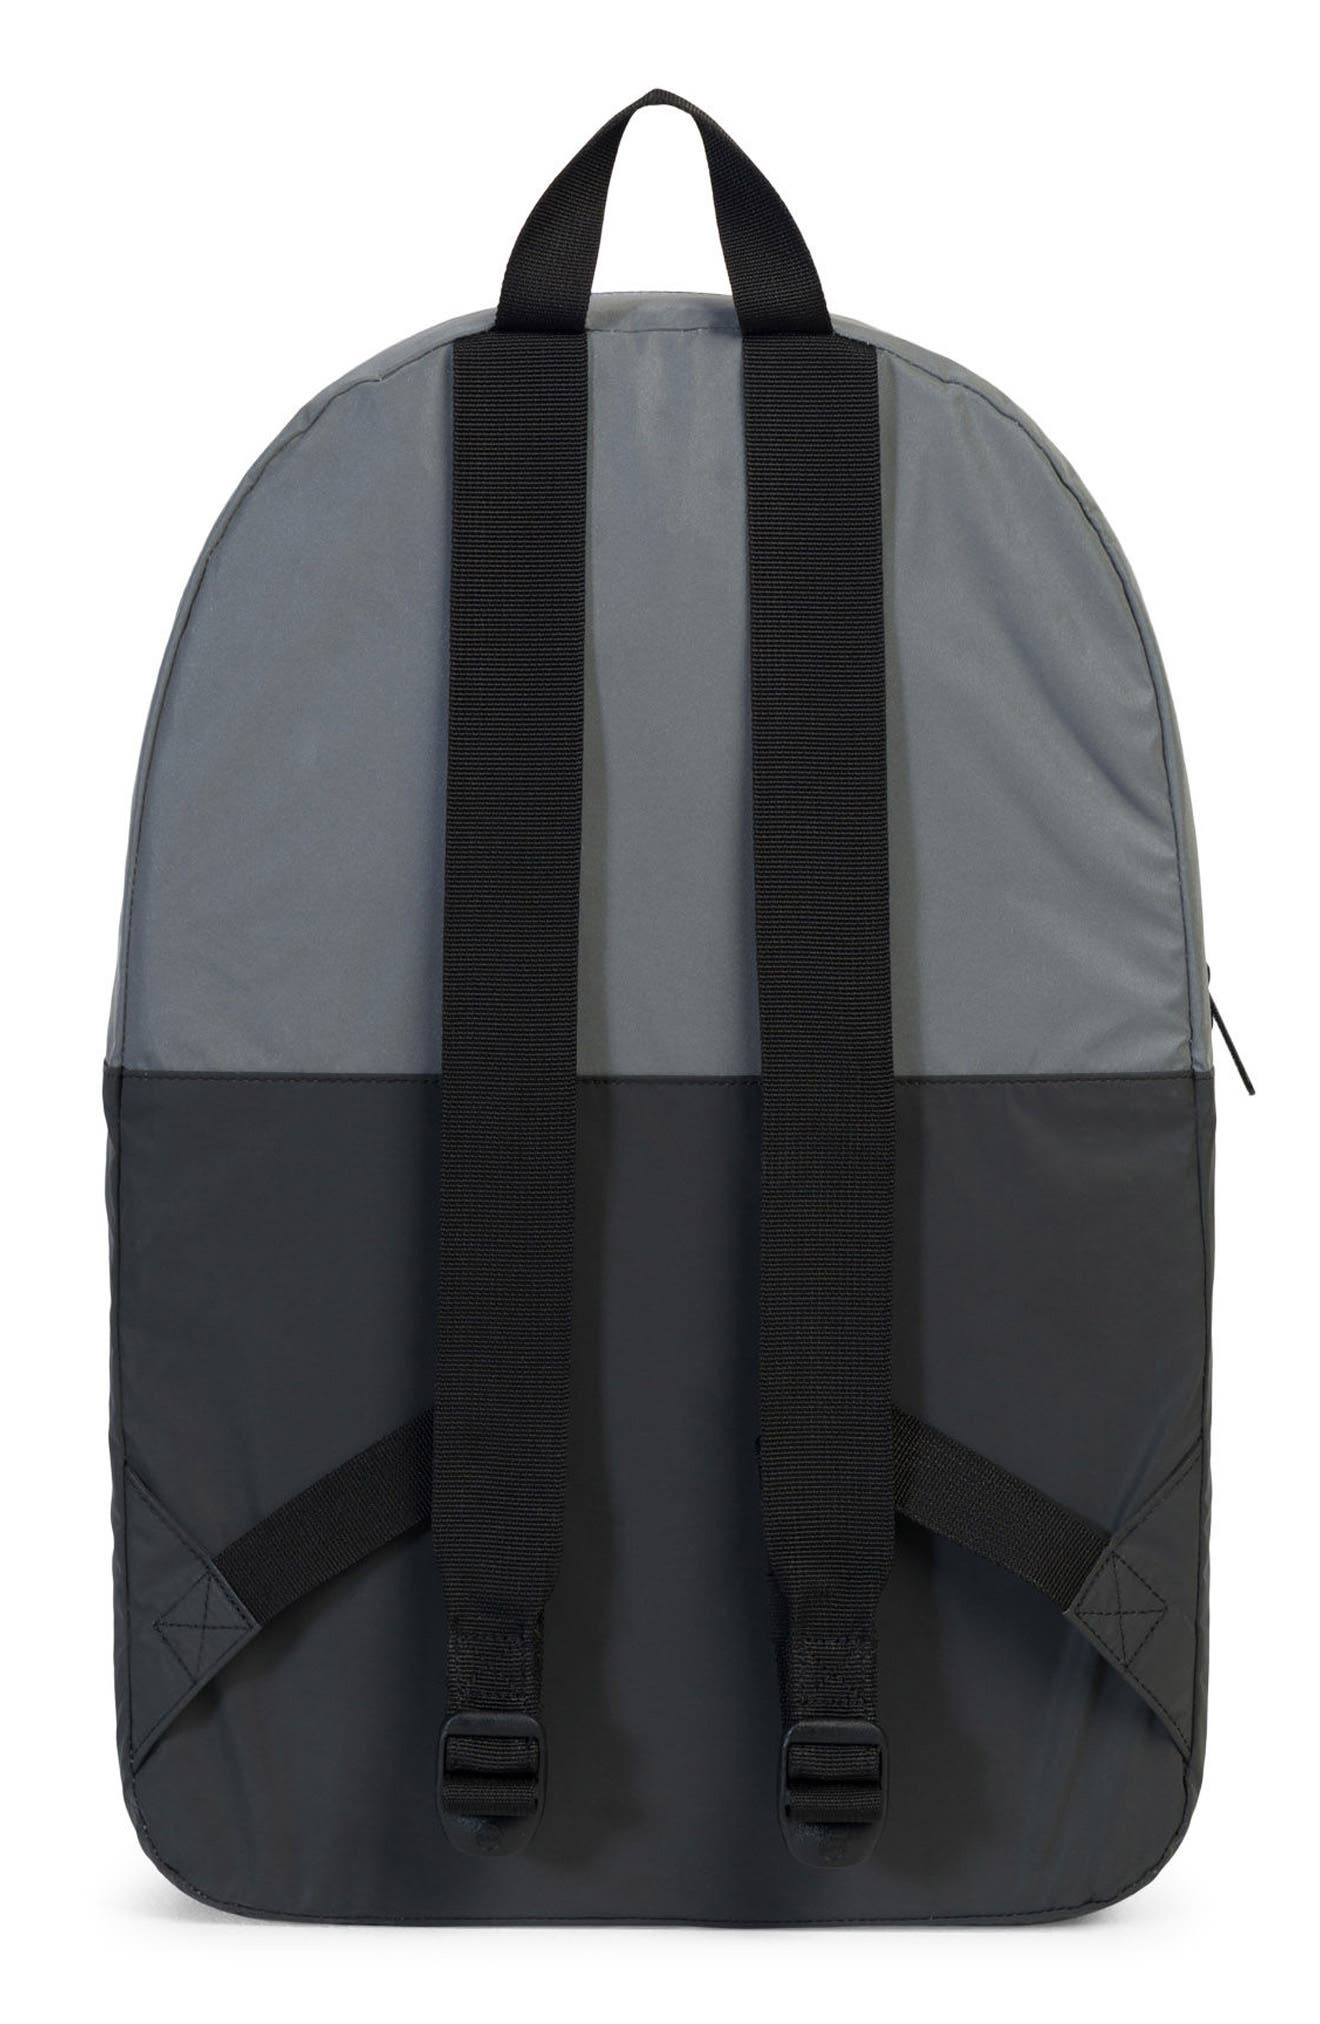 Heritage Reflective Backpack,                             Alternate thumbnail 2, color,                             050